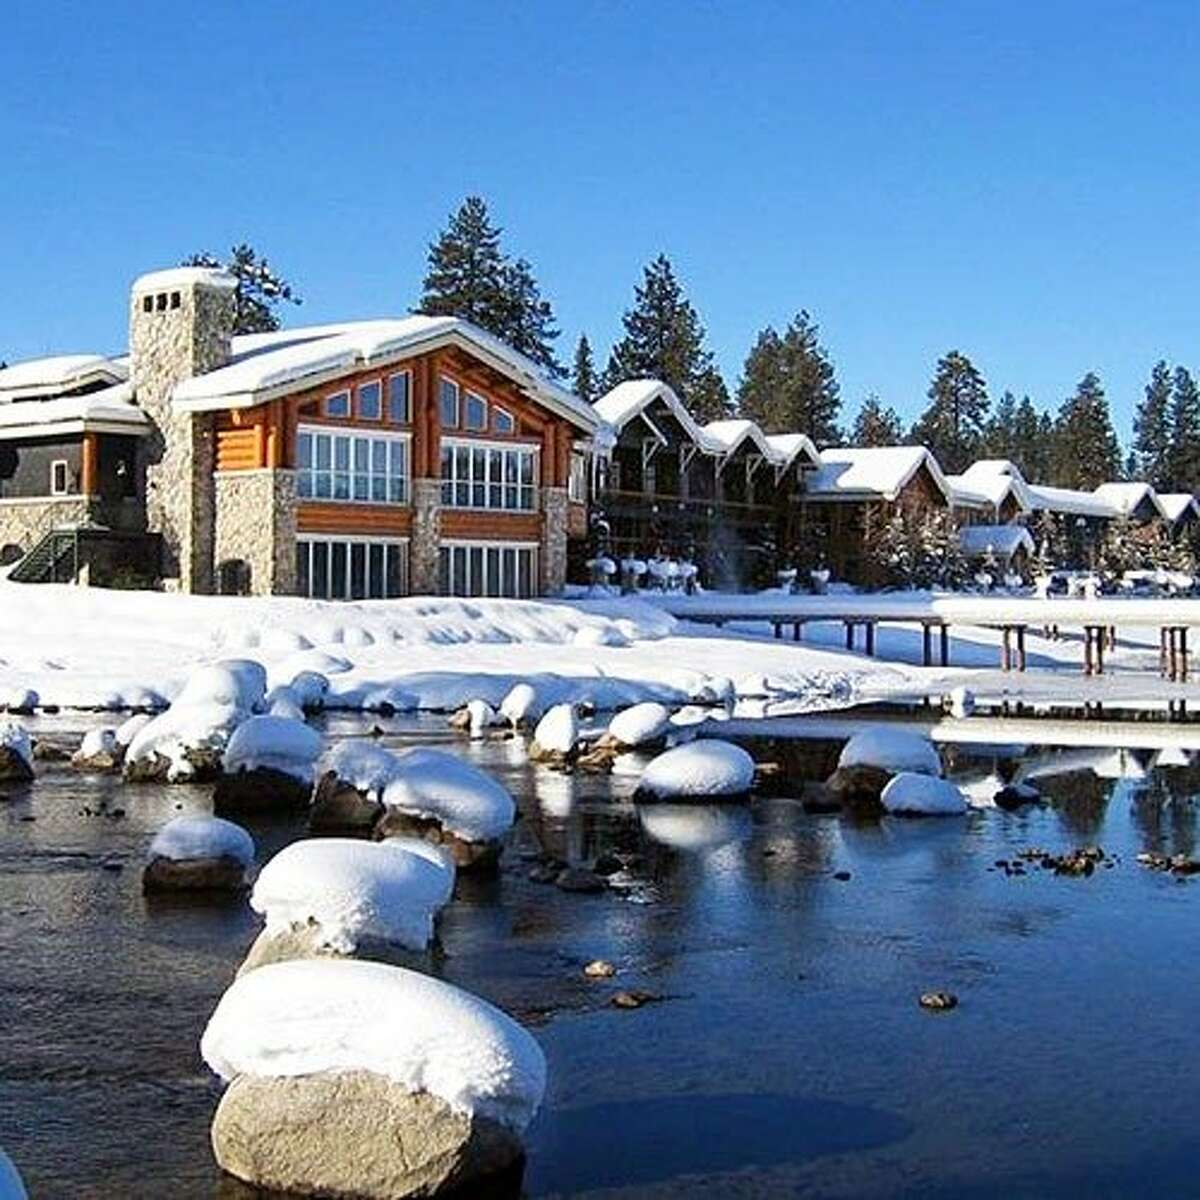 1. McCall, Idaho . The filming destination for the 1940s western film,